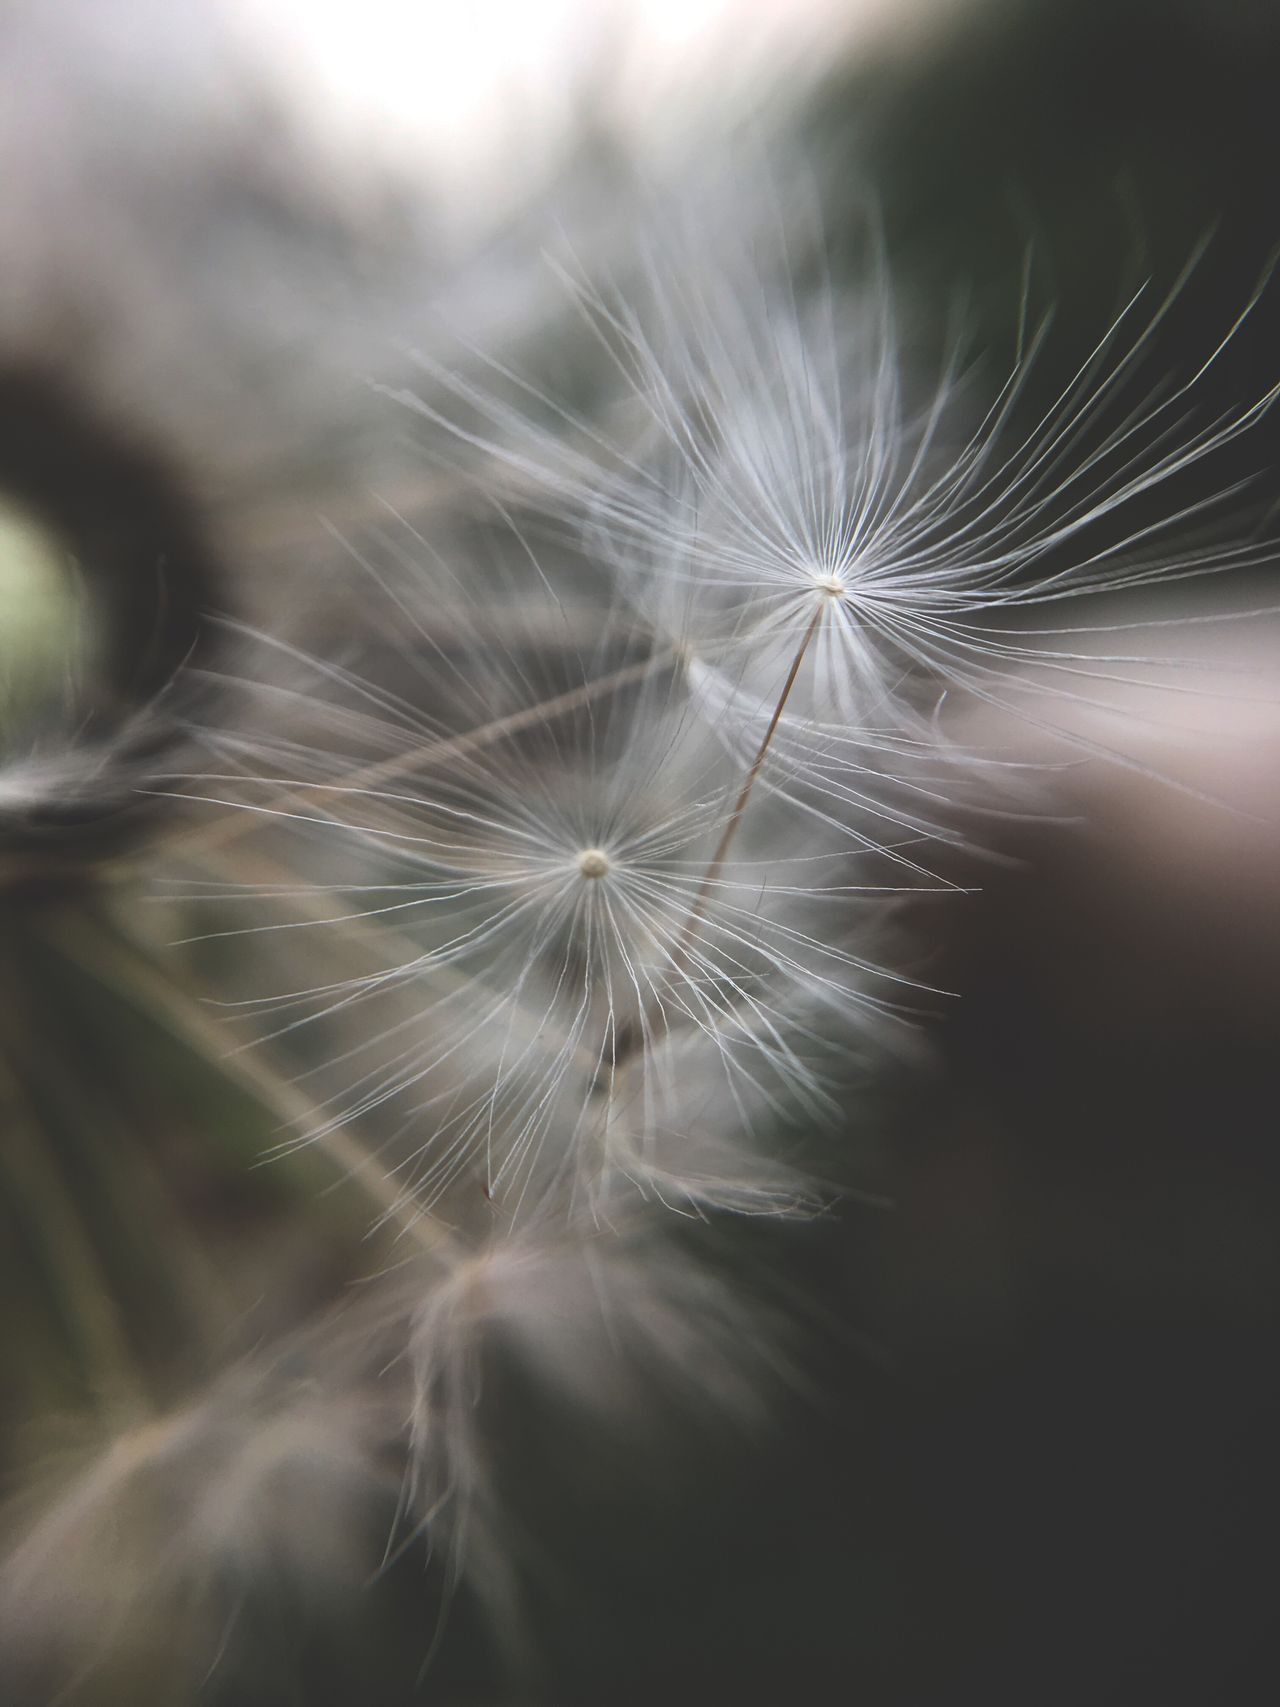 Dandelion Dandelion Seed Flower Softness Fragility Freshness Nature Close-up Focus On Foreground Flower Head Beauty In Nature Selective Focus Growth Uncultivated No People Outdoors Day Hope